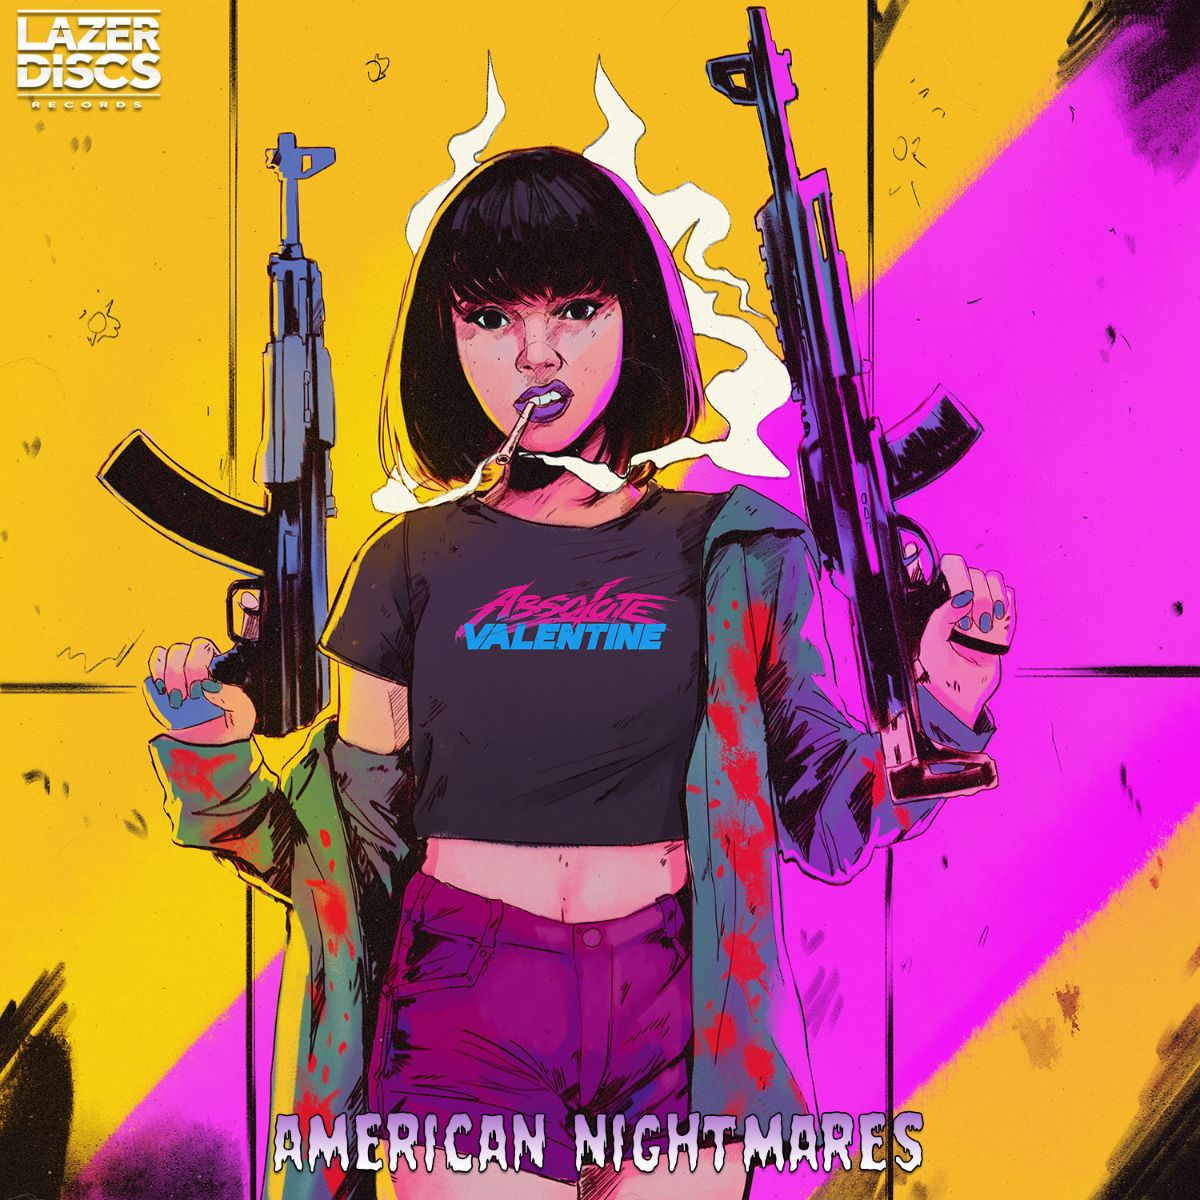 FRENCH SYNTHWAVE CYBERPUNK PRODUCER ABSOLUTE VALENTINE IS FINALLY BACK WITH A NEW ALBUM NAMED 'AMERICAN NIGHTMARES', ON THE 22ND OF JANUARY 2021.